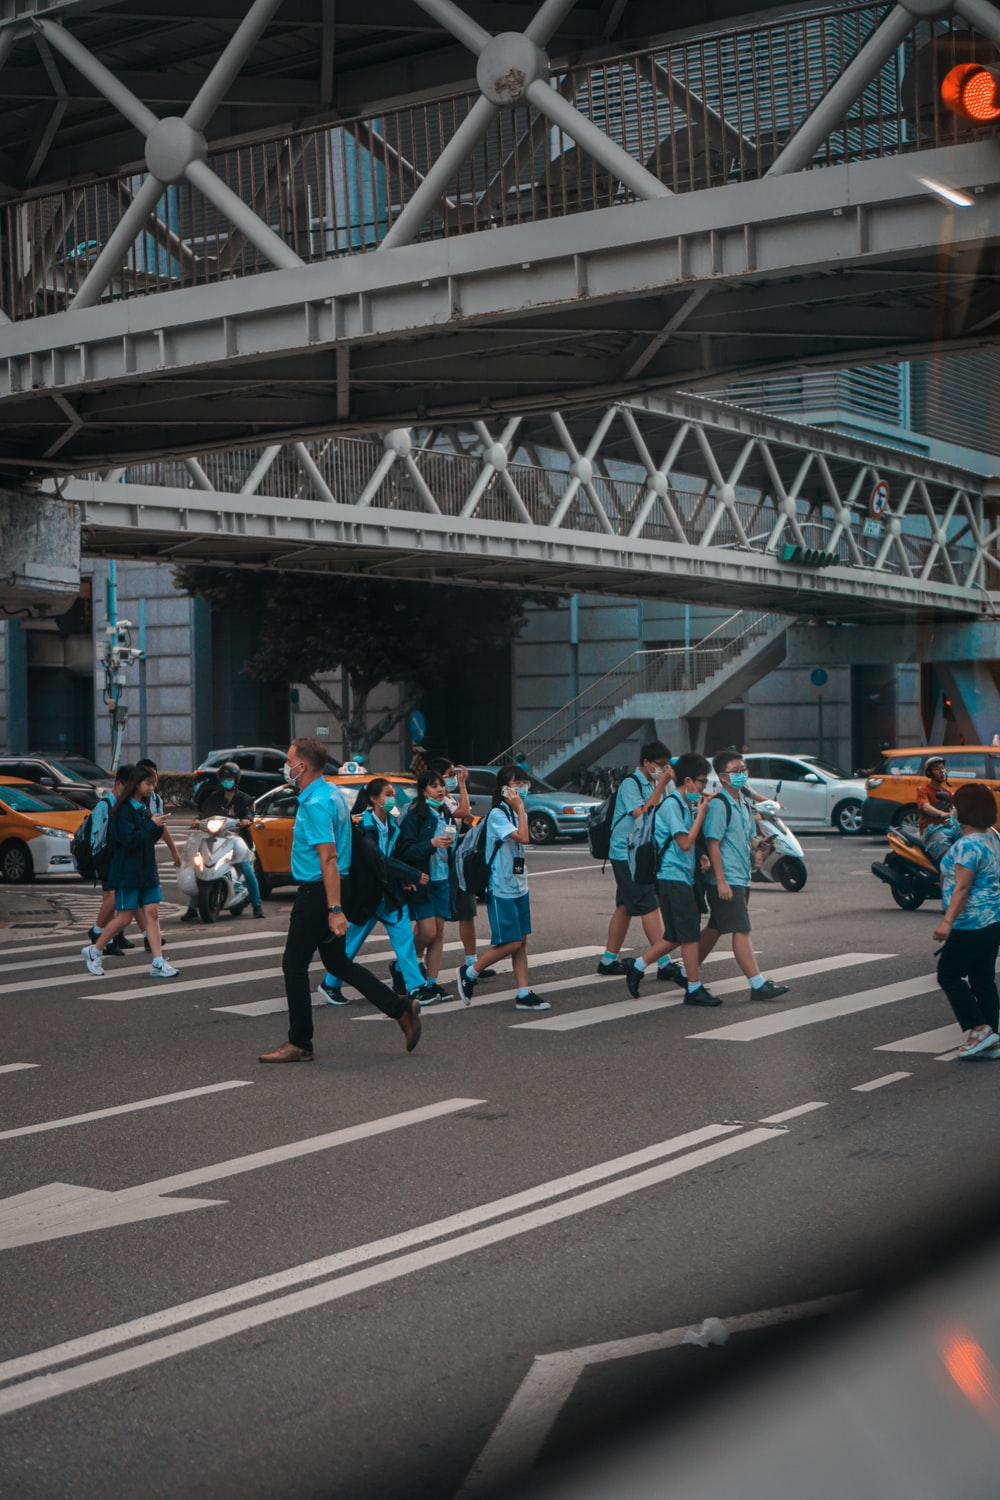 people in blue and orange shirts running on road during daytime